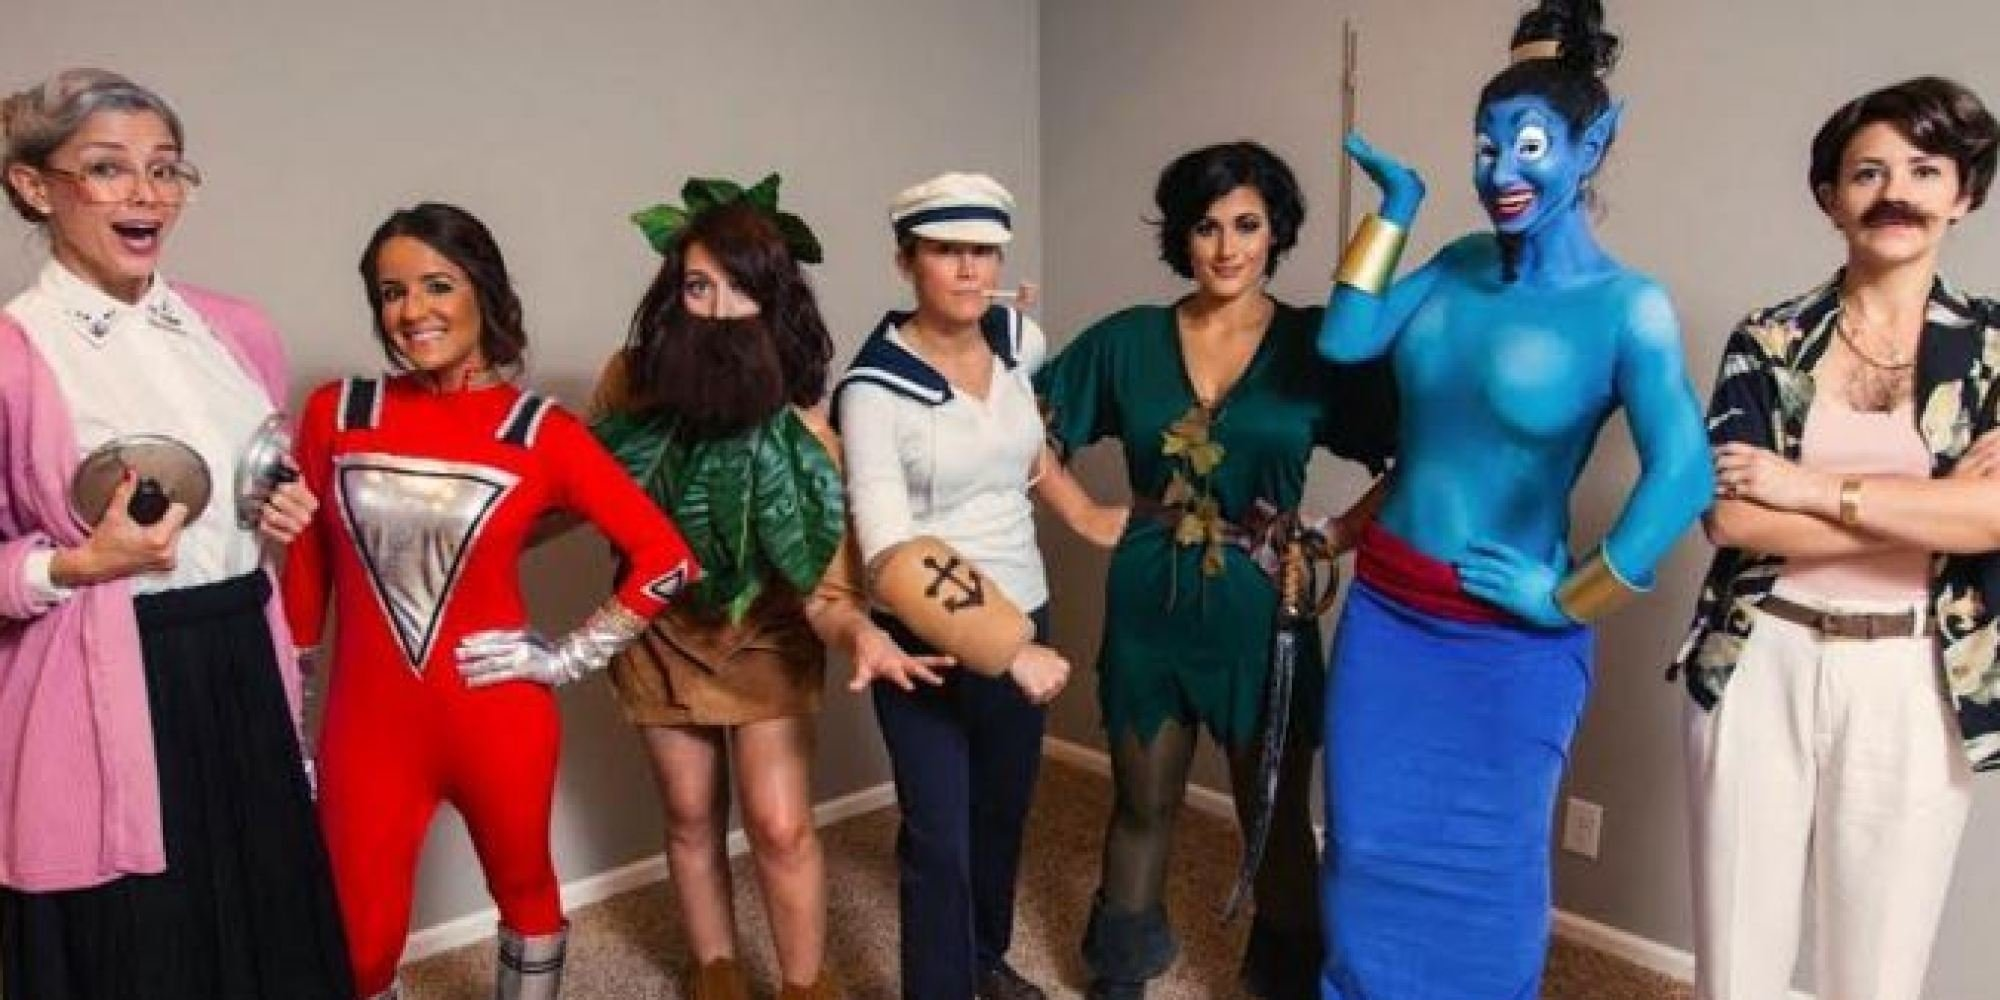 10 Awesome Funny Group Halloween Costumes Ideas group halloween costume ideas 7 women dress up as one actor every 1